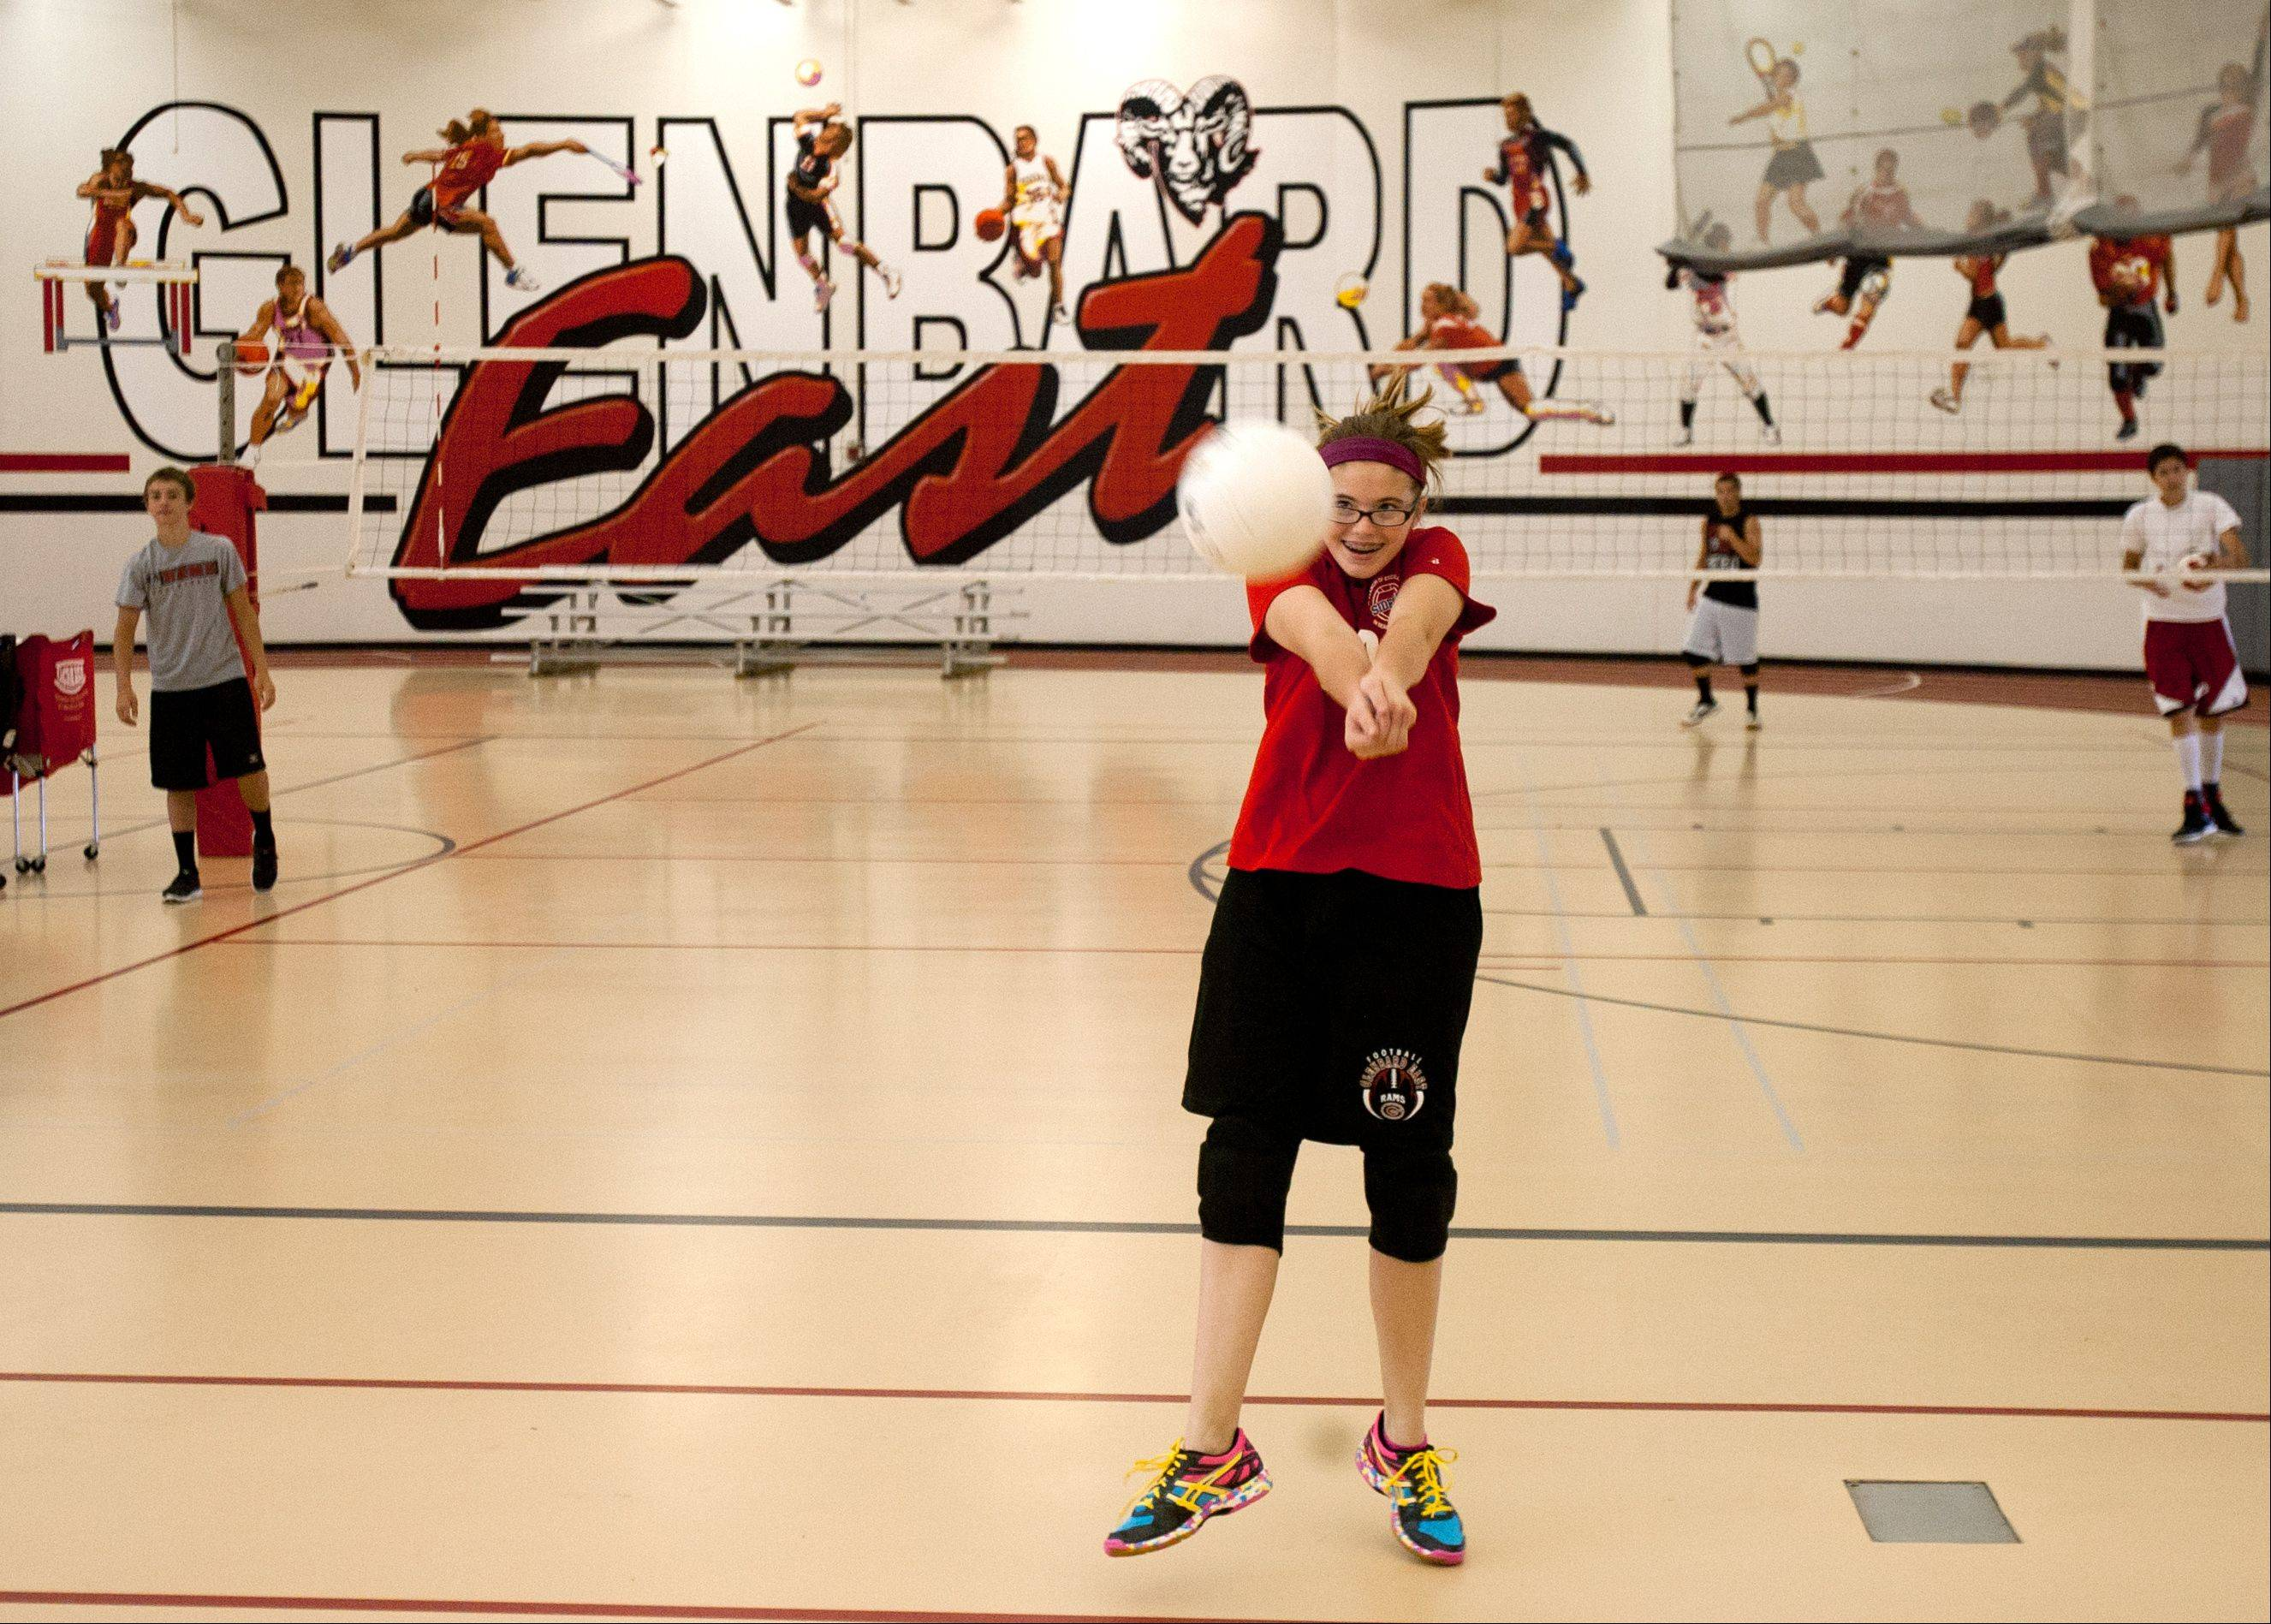 Glenbard East sophomore volleyball player Catherine McKinney returns a practice volley during a coed summer camp at the Lombard school. Catherine said the school does a good job of offering equal athletic opportunities for girls and boys.